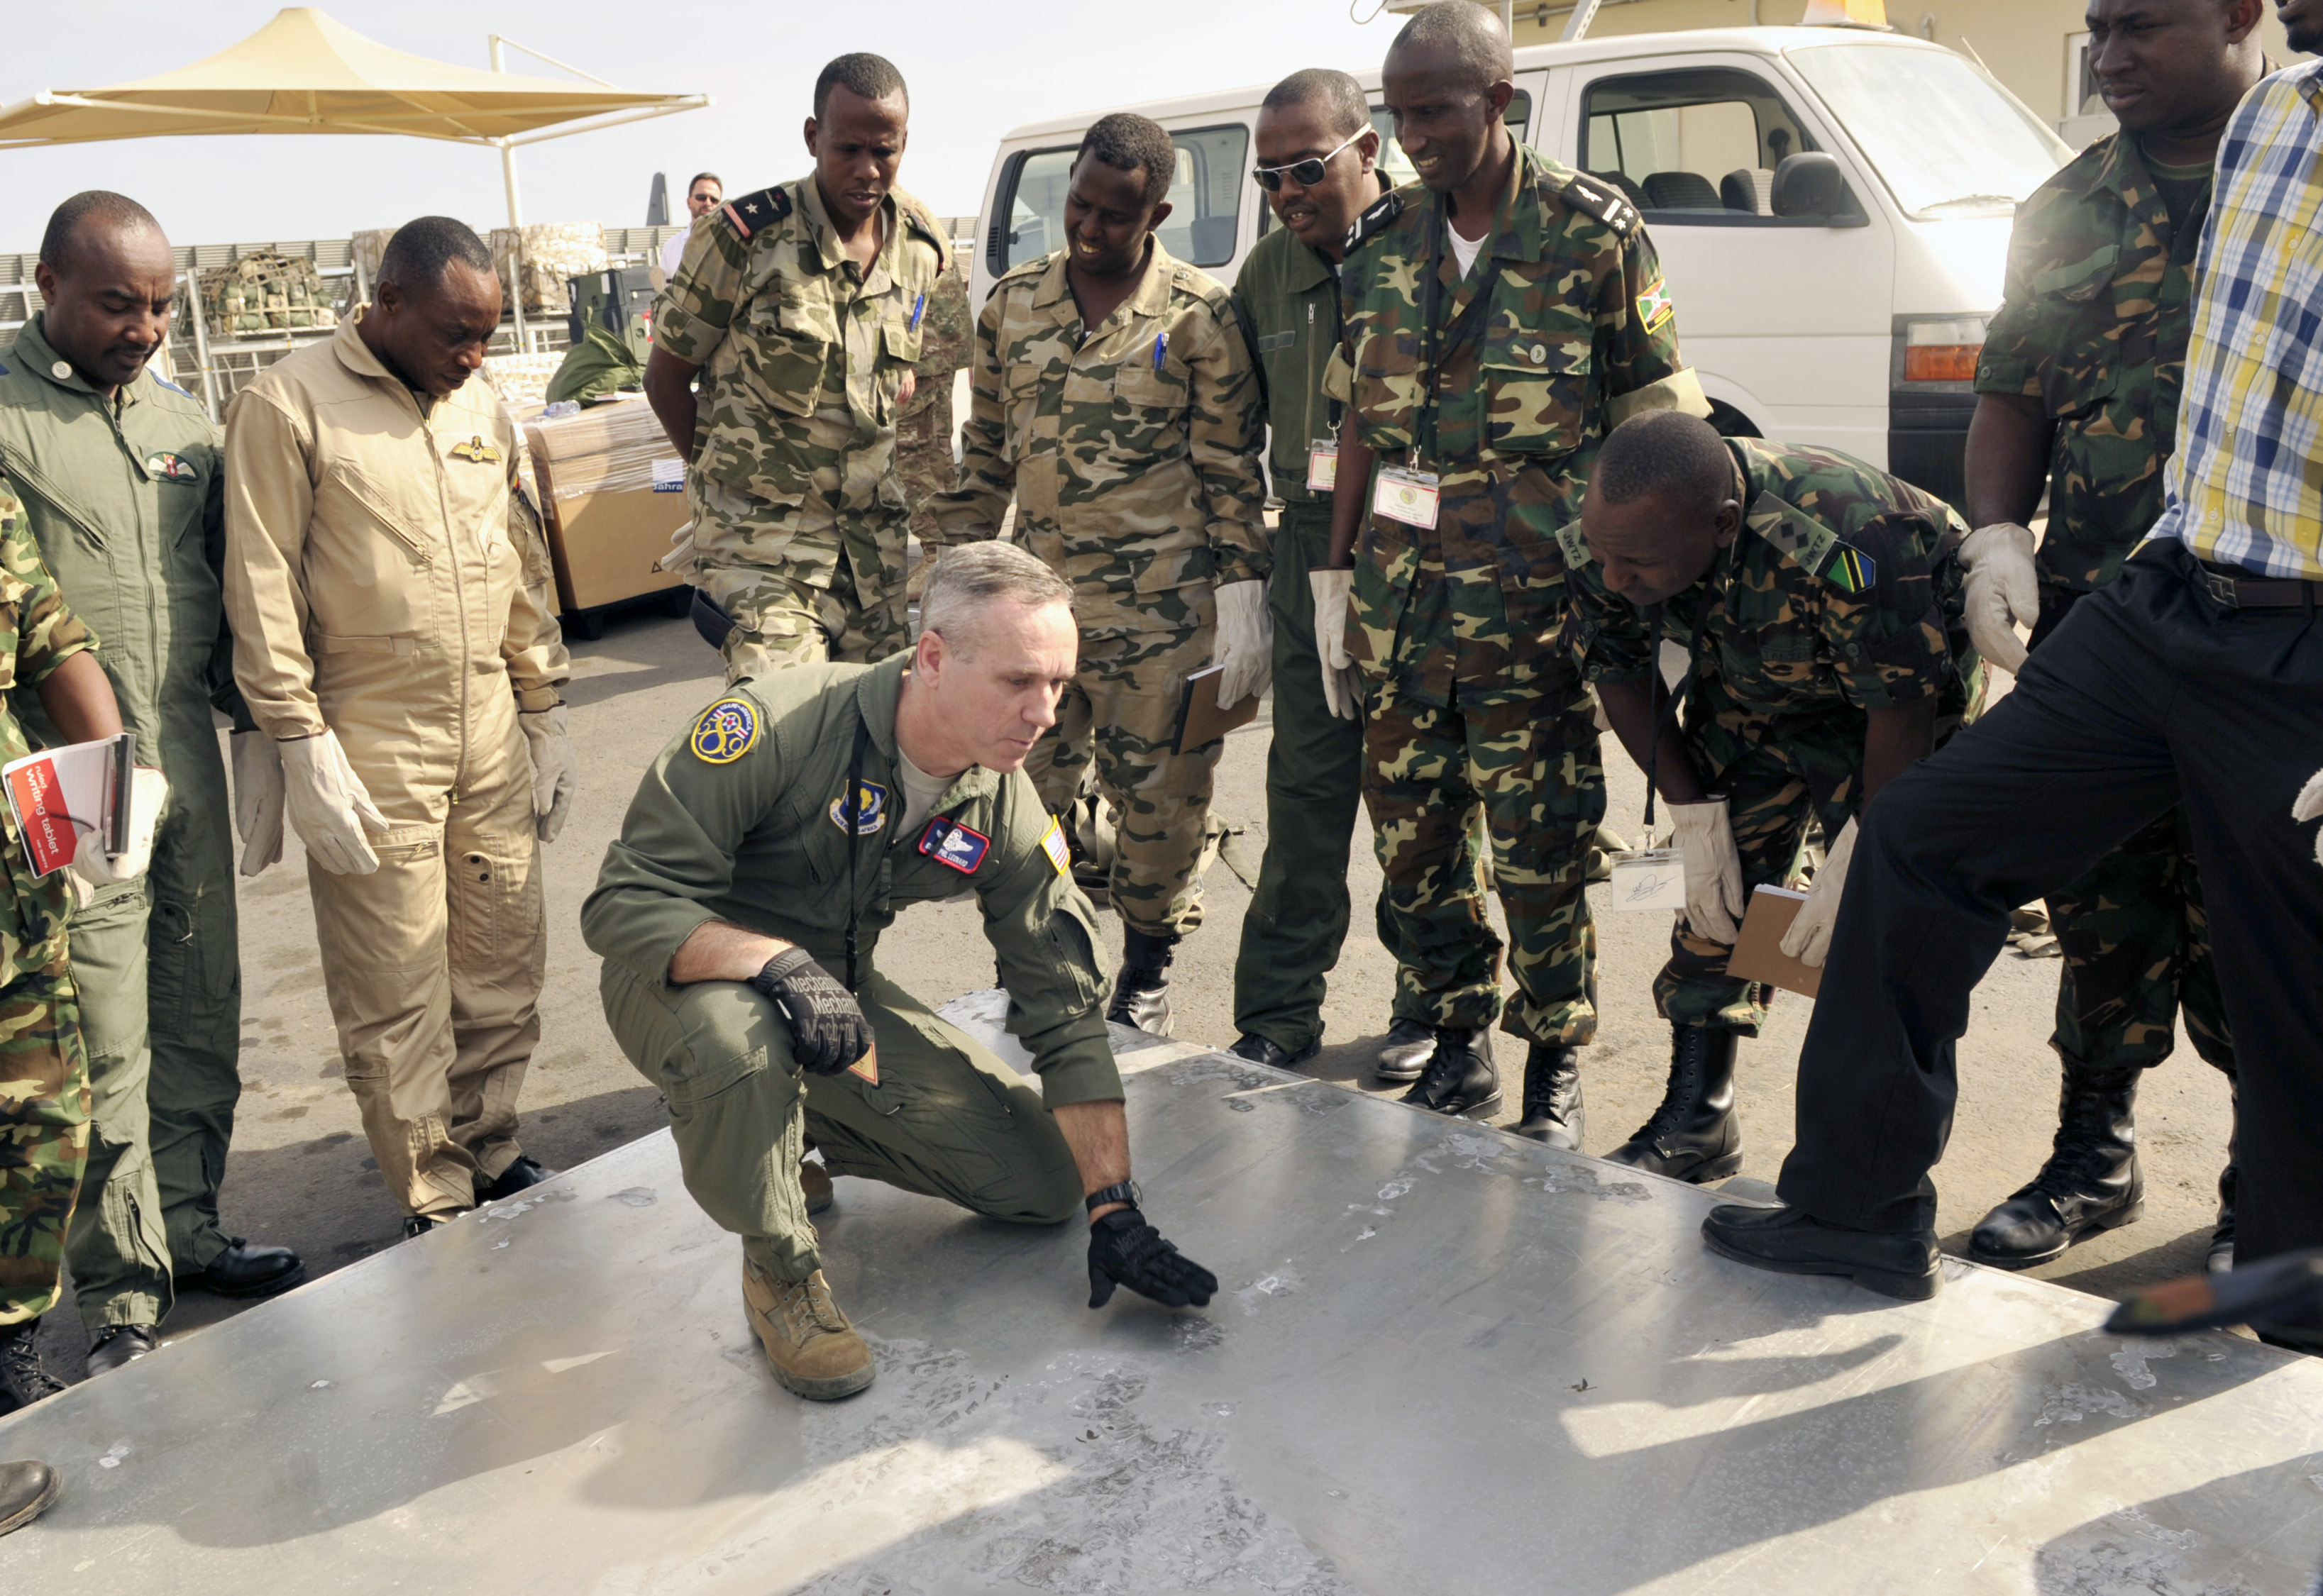 U.S. Air Force Senior Master Sgt. Phillip Leonard, U.S. Air Forces Europe and Air Forces Africa loadmaster, discusses cargo pallet inspection procedures with East African air forces members during African Partnership Flight– Djibouti at Djibouti Air Base, Feb. 10, 2015.  APF is the premiere program to bring together partner nations to increase cooperation and interoperability, which fosters stability and security throughout the continent. (U.S. Air Force Photo by Tech. Sgt. Ian Dean)